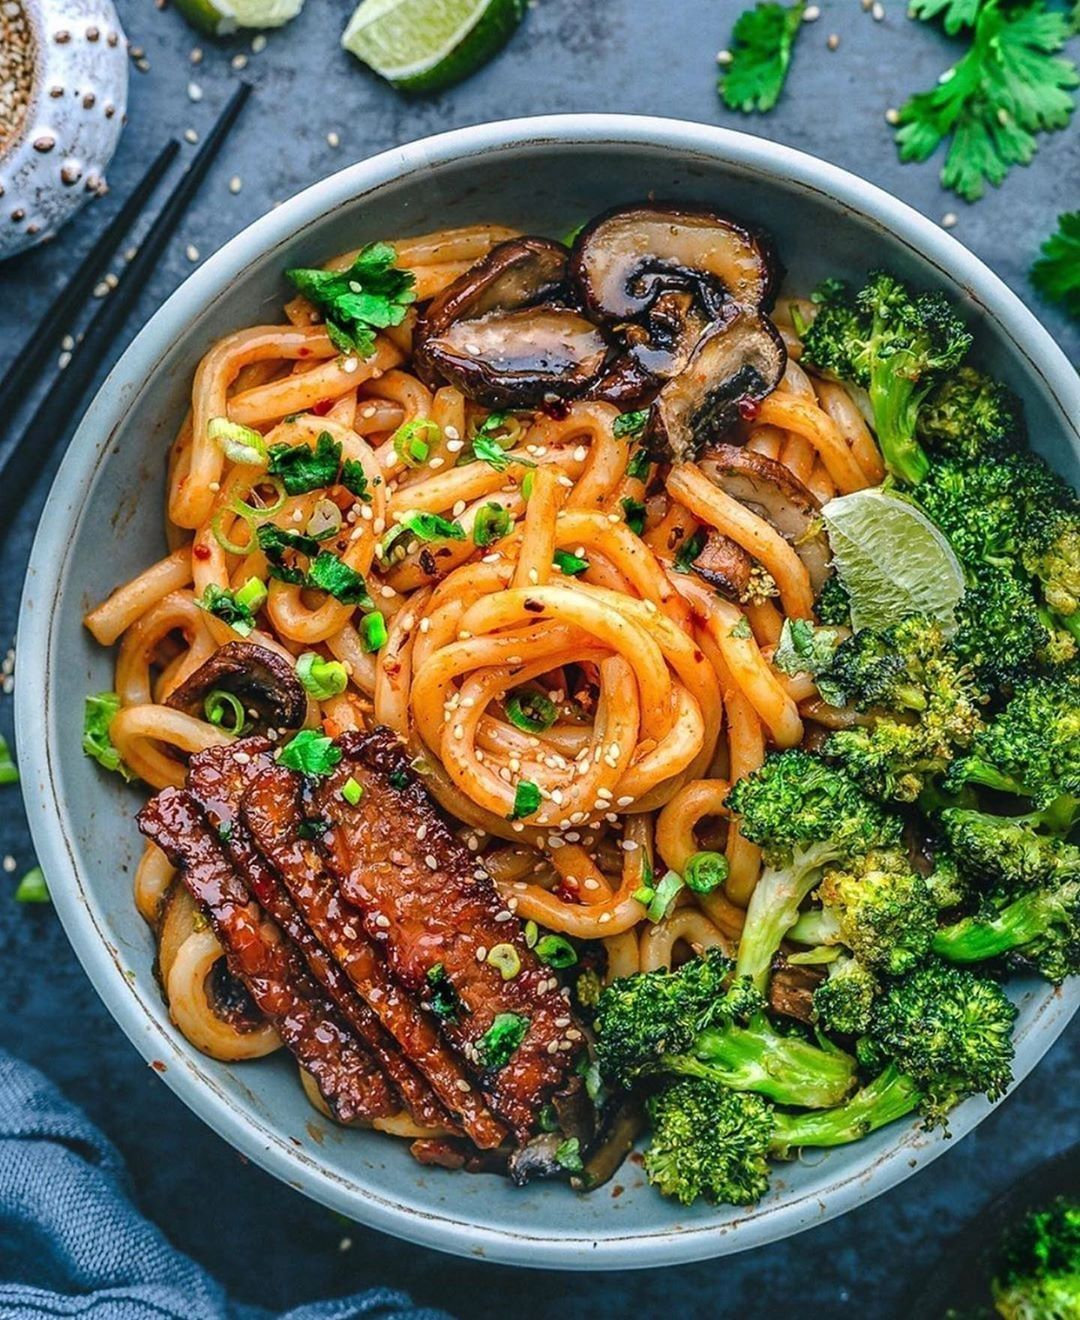 udon noodle and veggie bowl display image  66138fae